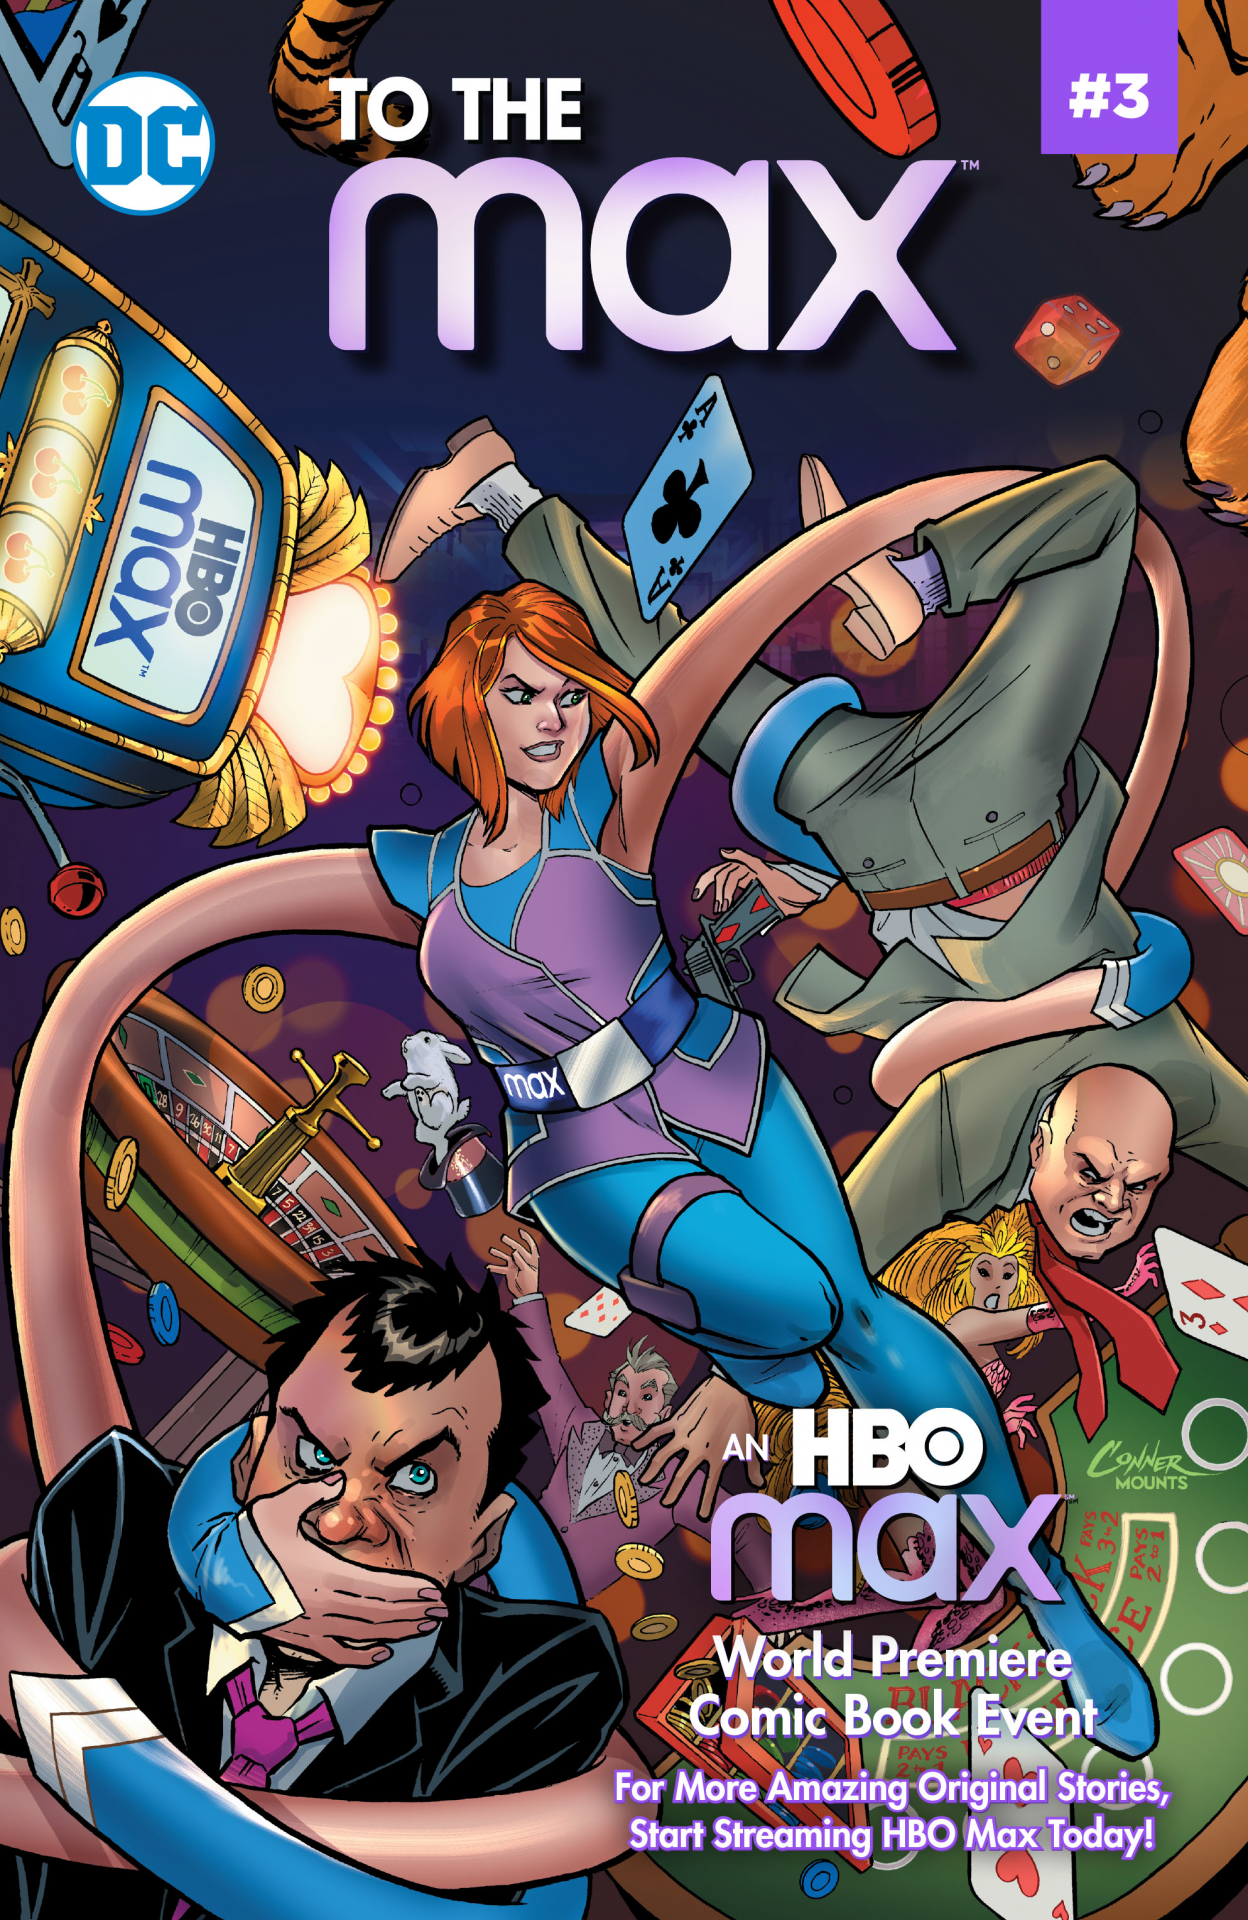 [9AM PT MONDAY] Check Out This Amanda Conner HBO Max Comic Cover (Exclusive)_1